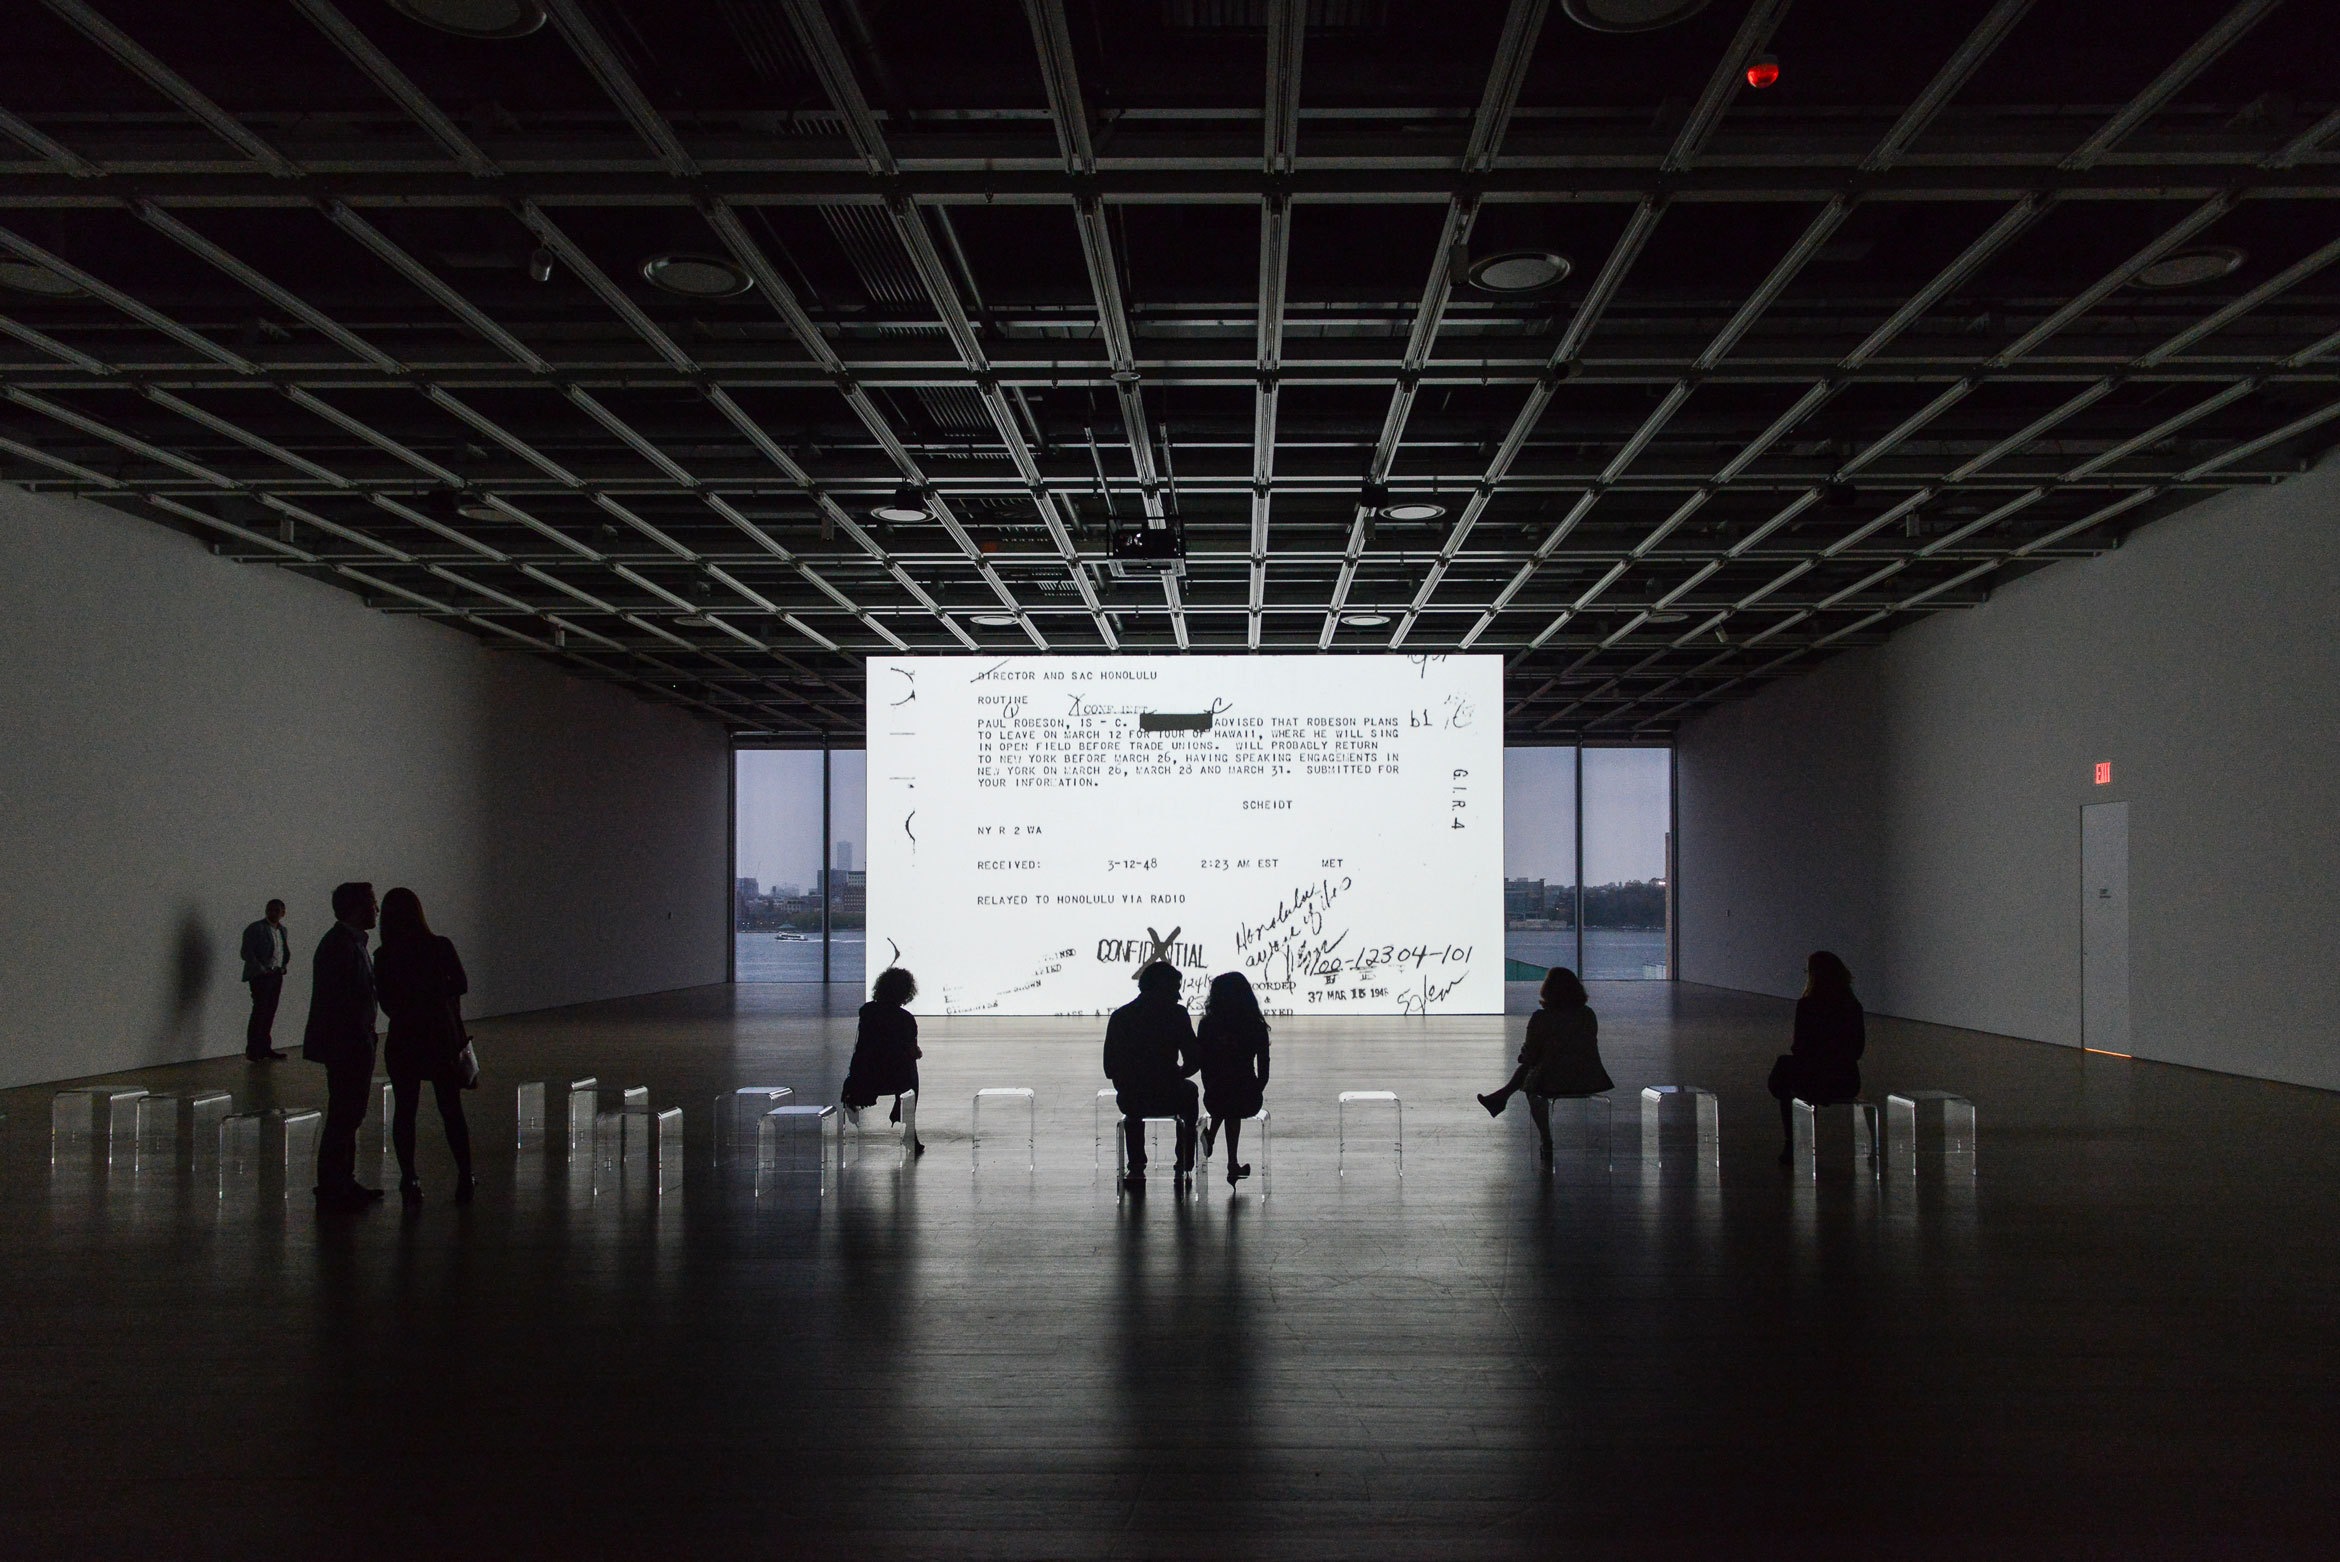 Exhibition view of Open Plan: Steve McQueen (Whitney Museum of American Art, New York, April 29–May 14, 2016). Courtesy The Whitney Museum of American Art. Photograph: Matt Carasella.